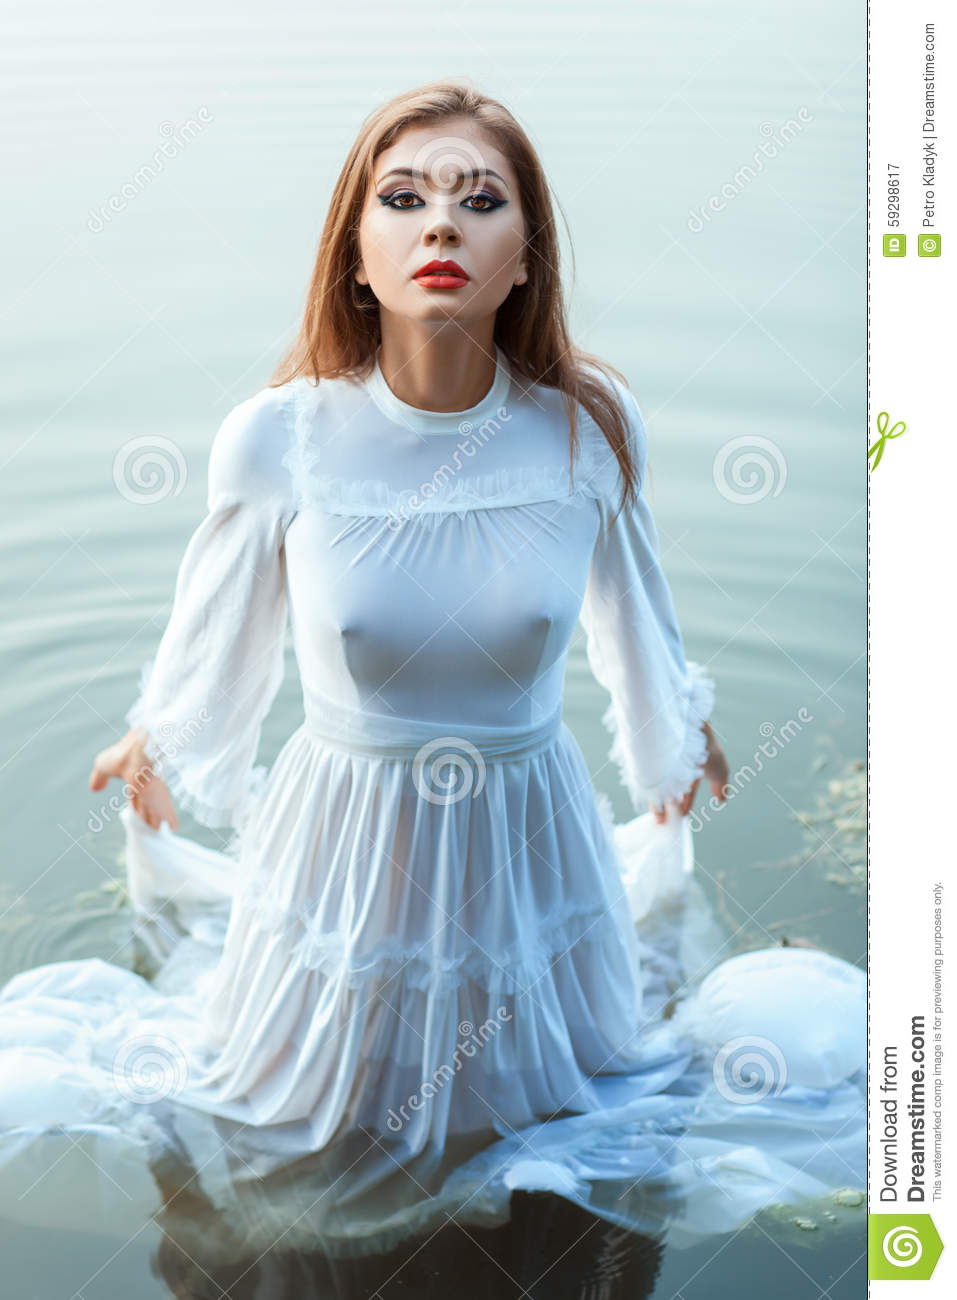 Girl In The White Dress Bride Standing Water. Stock Photo ...